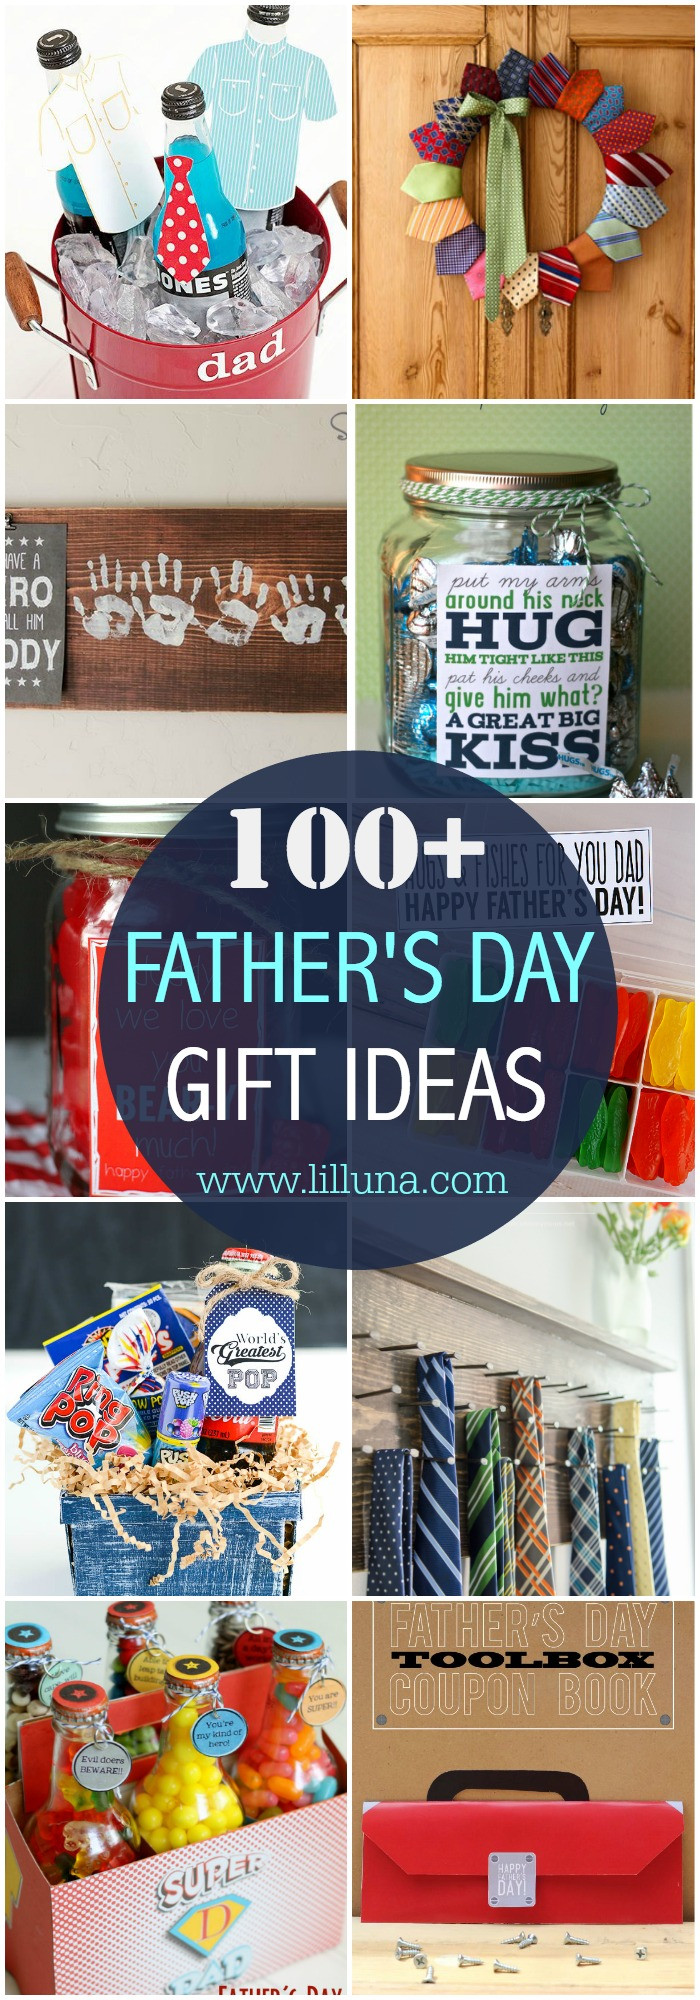 Best ideas about DIY Gifts For Dad . Save or Pin 100 DIY Father s Day Gifts Now.